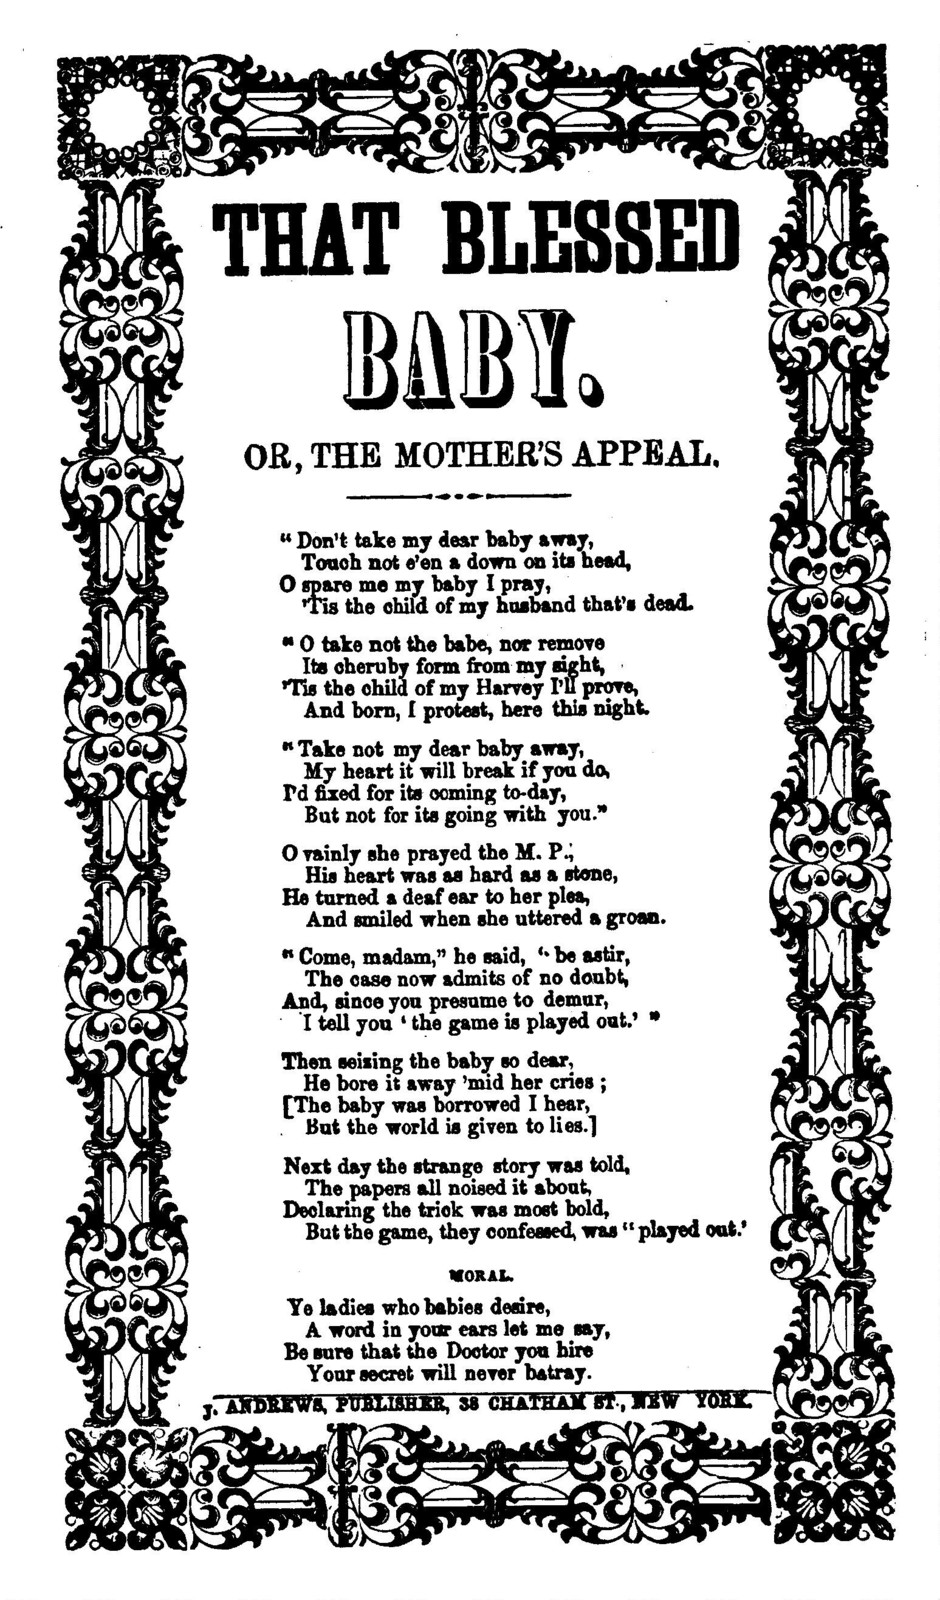 The  That blessed baby, or mother's appeal. J. Andrews, 38 Chatham Street, N. Y